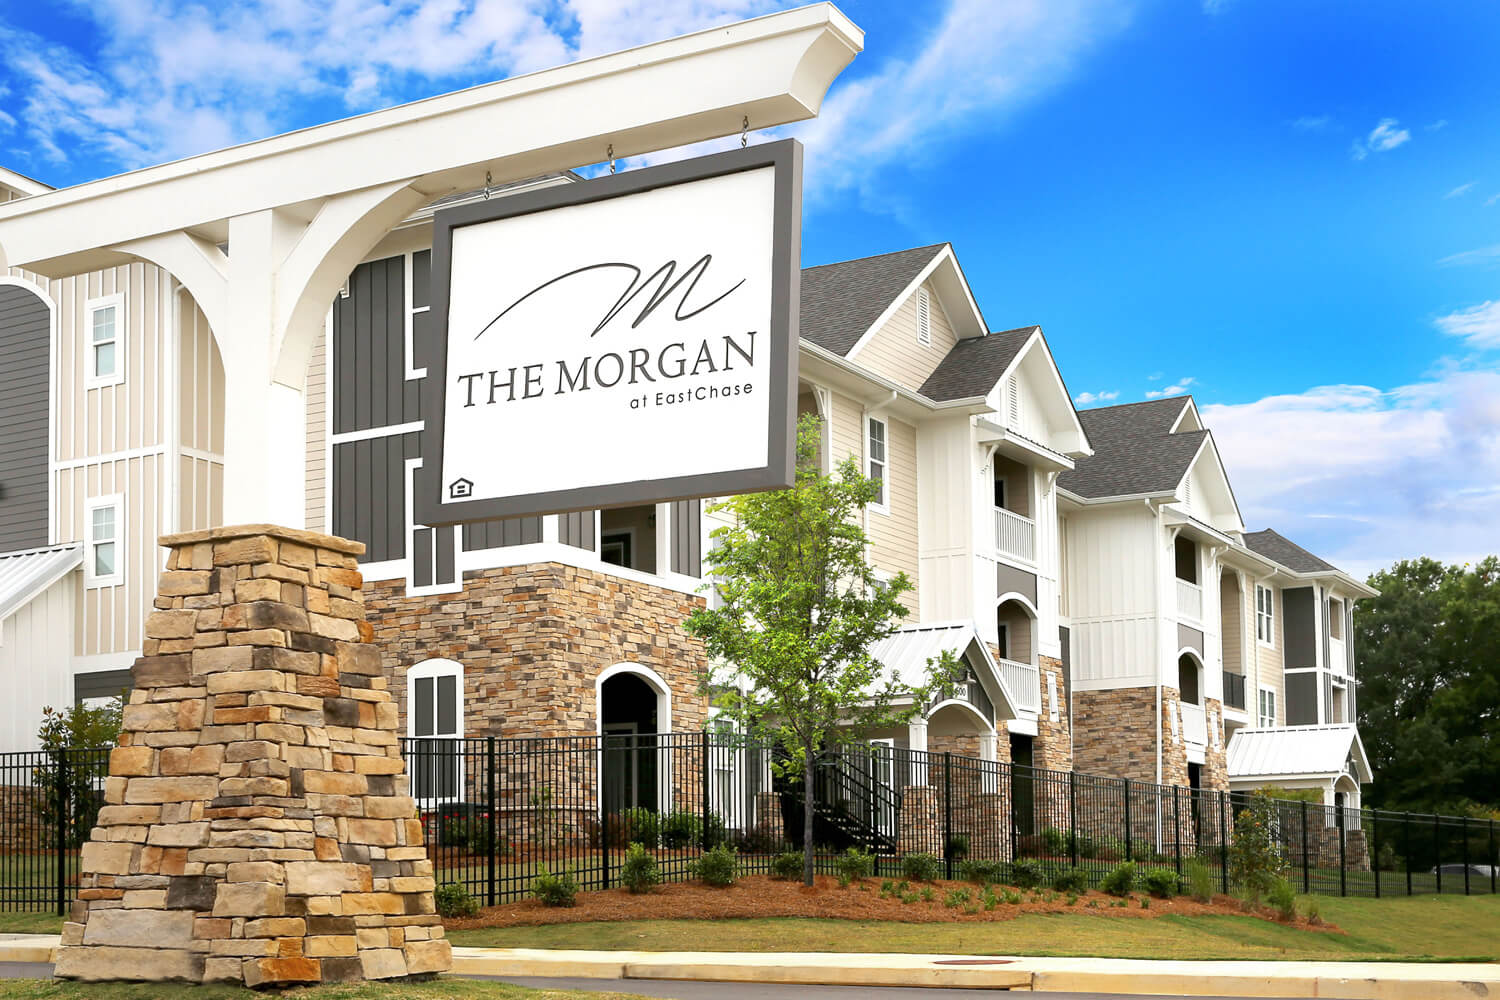 The Morgan Apartments Designed by Foshee Architecture - Entry Sign